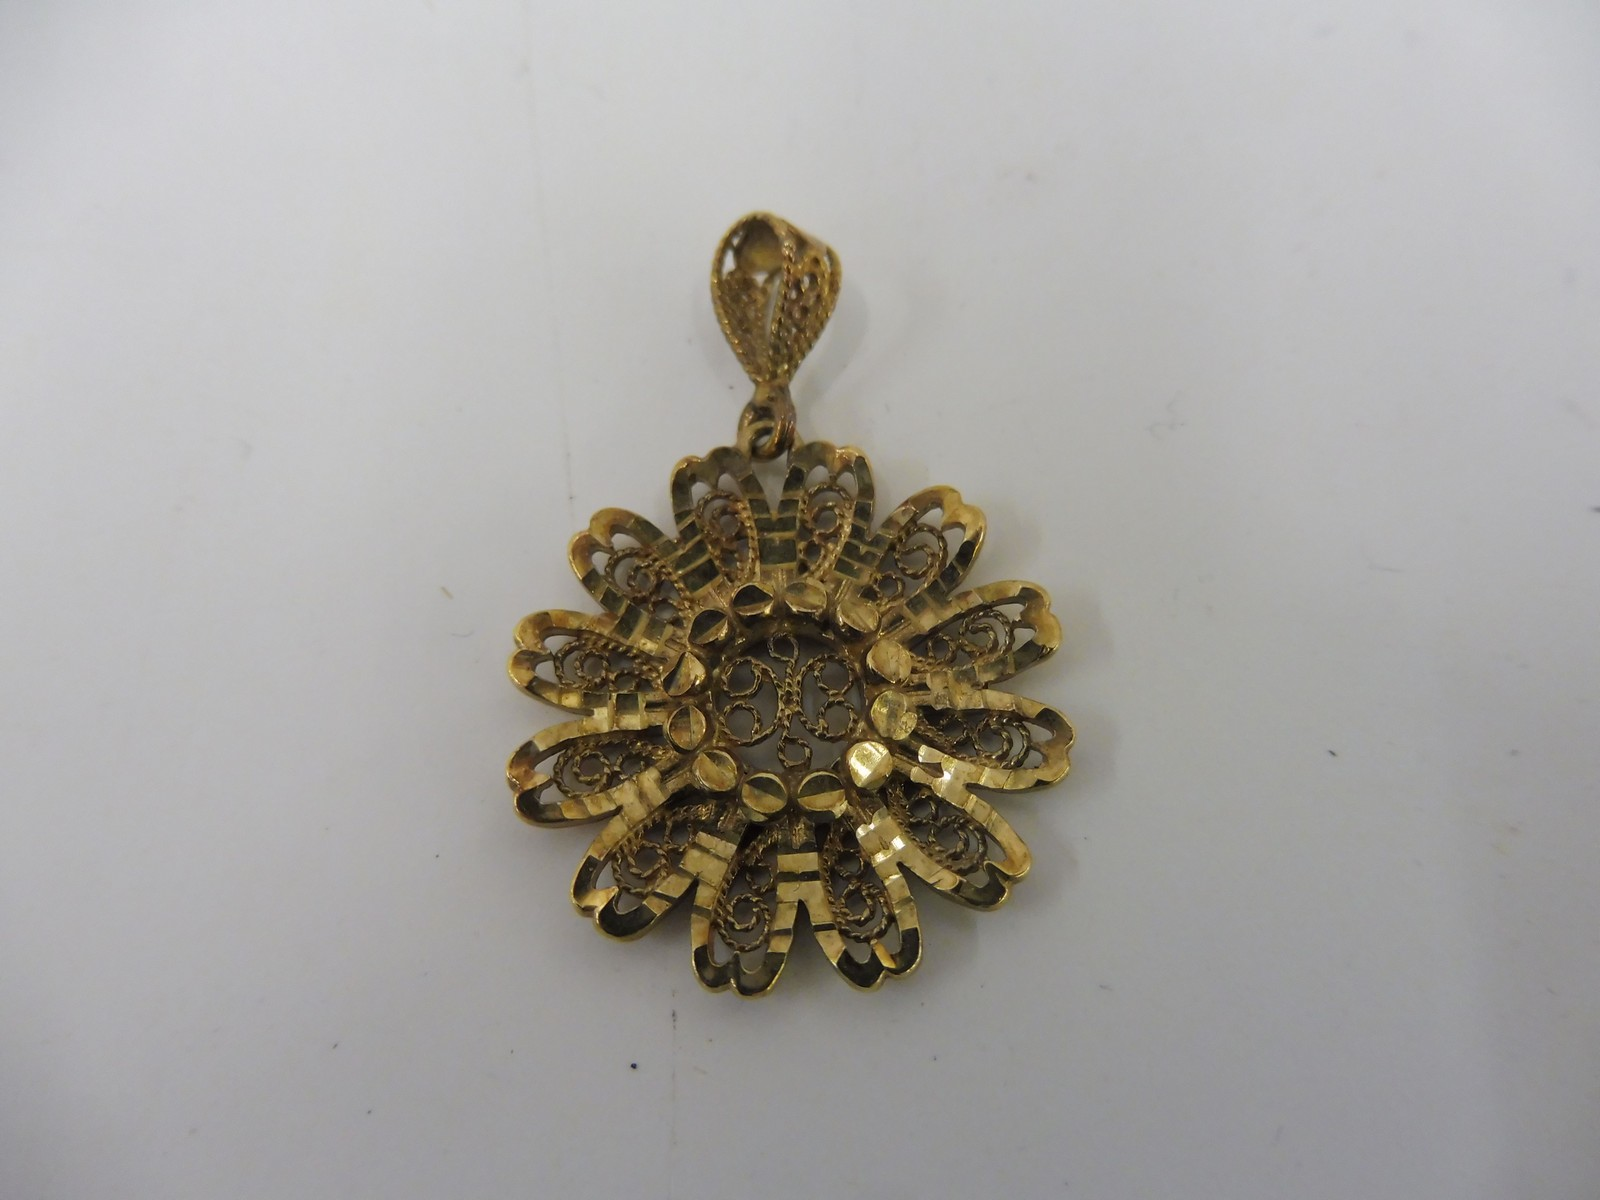 Lot 7 - An unusual 9ct gold rosette shaped pendant with filigree decoration.